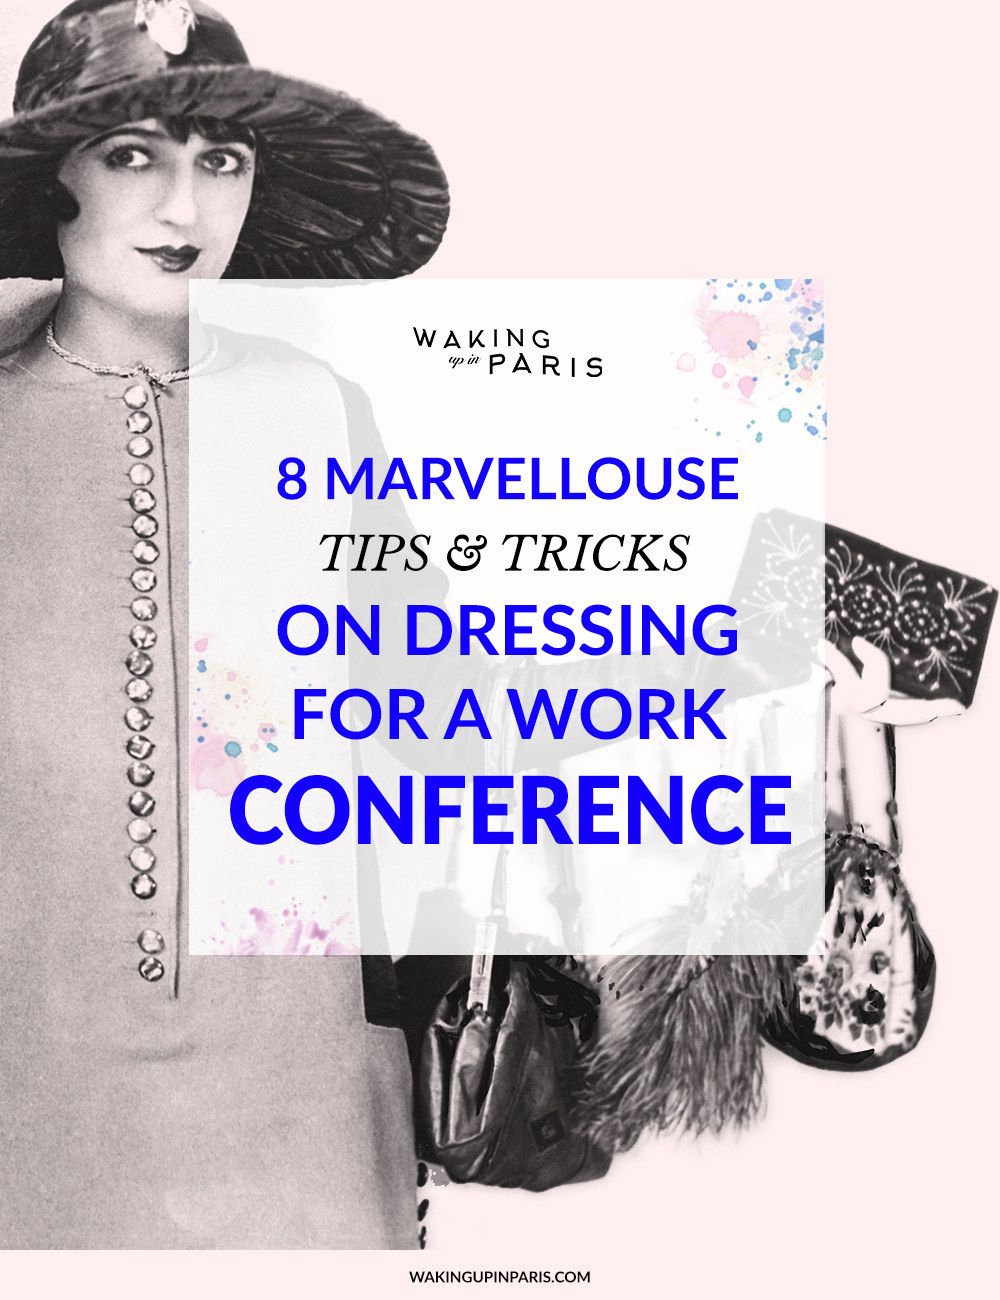 Waking Up In Paris | Clarissa Grace | Personal Style Online | Online Fashion Stylist | Confidence Coach | Dressing for a Work Conference | Mom Boss | Fashion For Working Moms & Mompreneurs | Tips & Tricks | After Baby | Mom Fashion | Women | Outfit Ideas | Clothes | Accessories | Jewelry